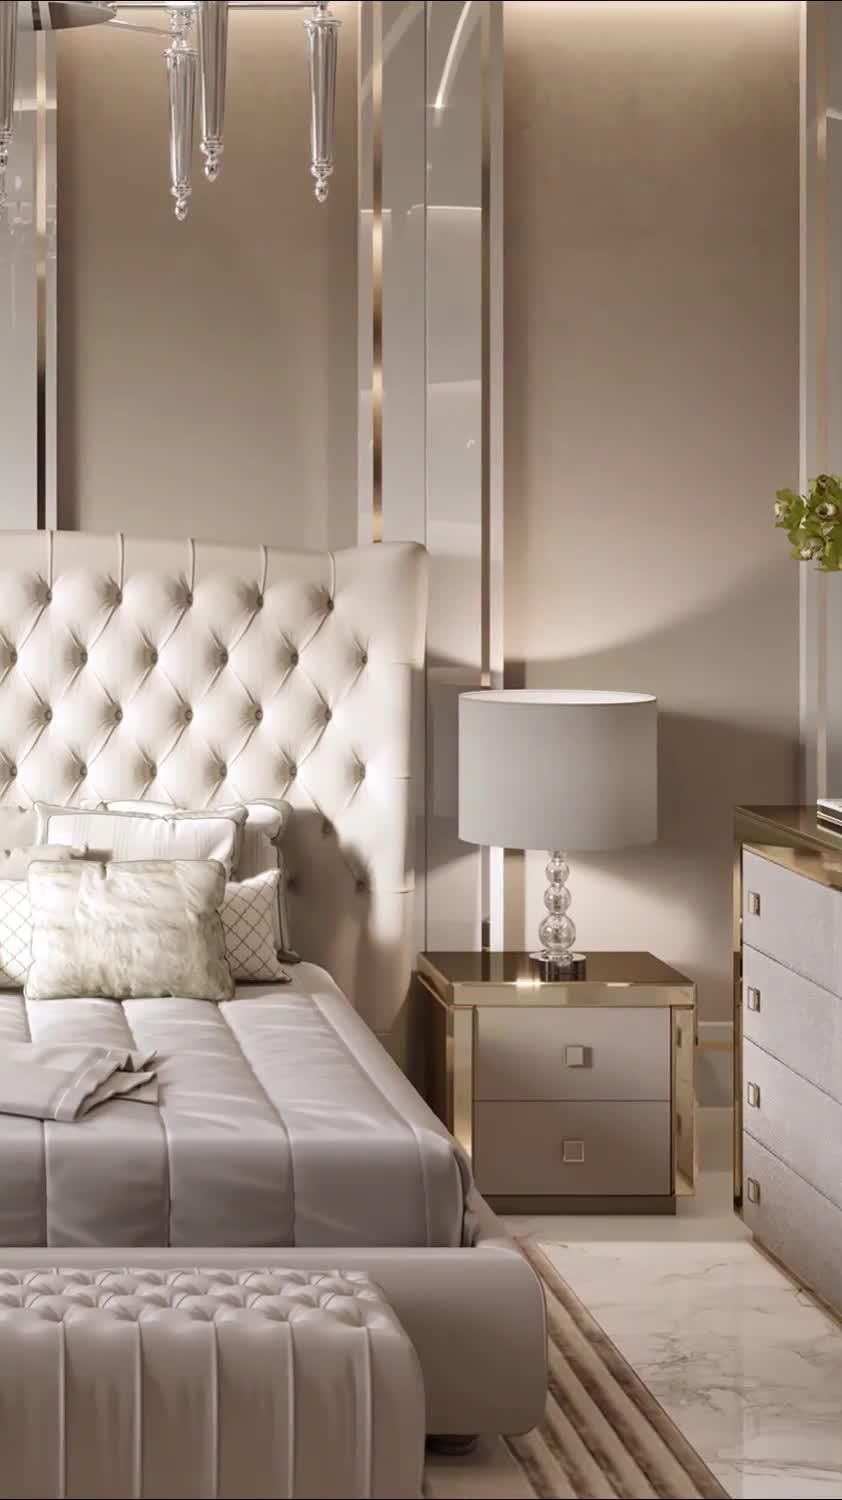 Great big family bedroom design video for your design ideas